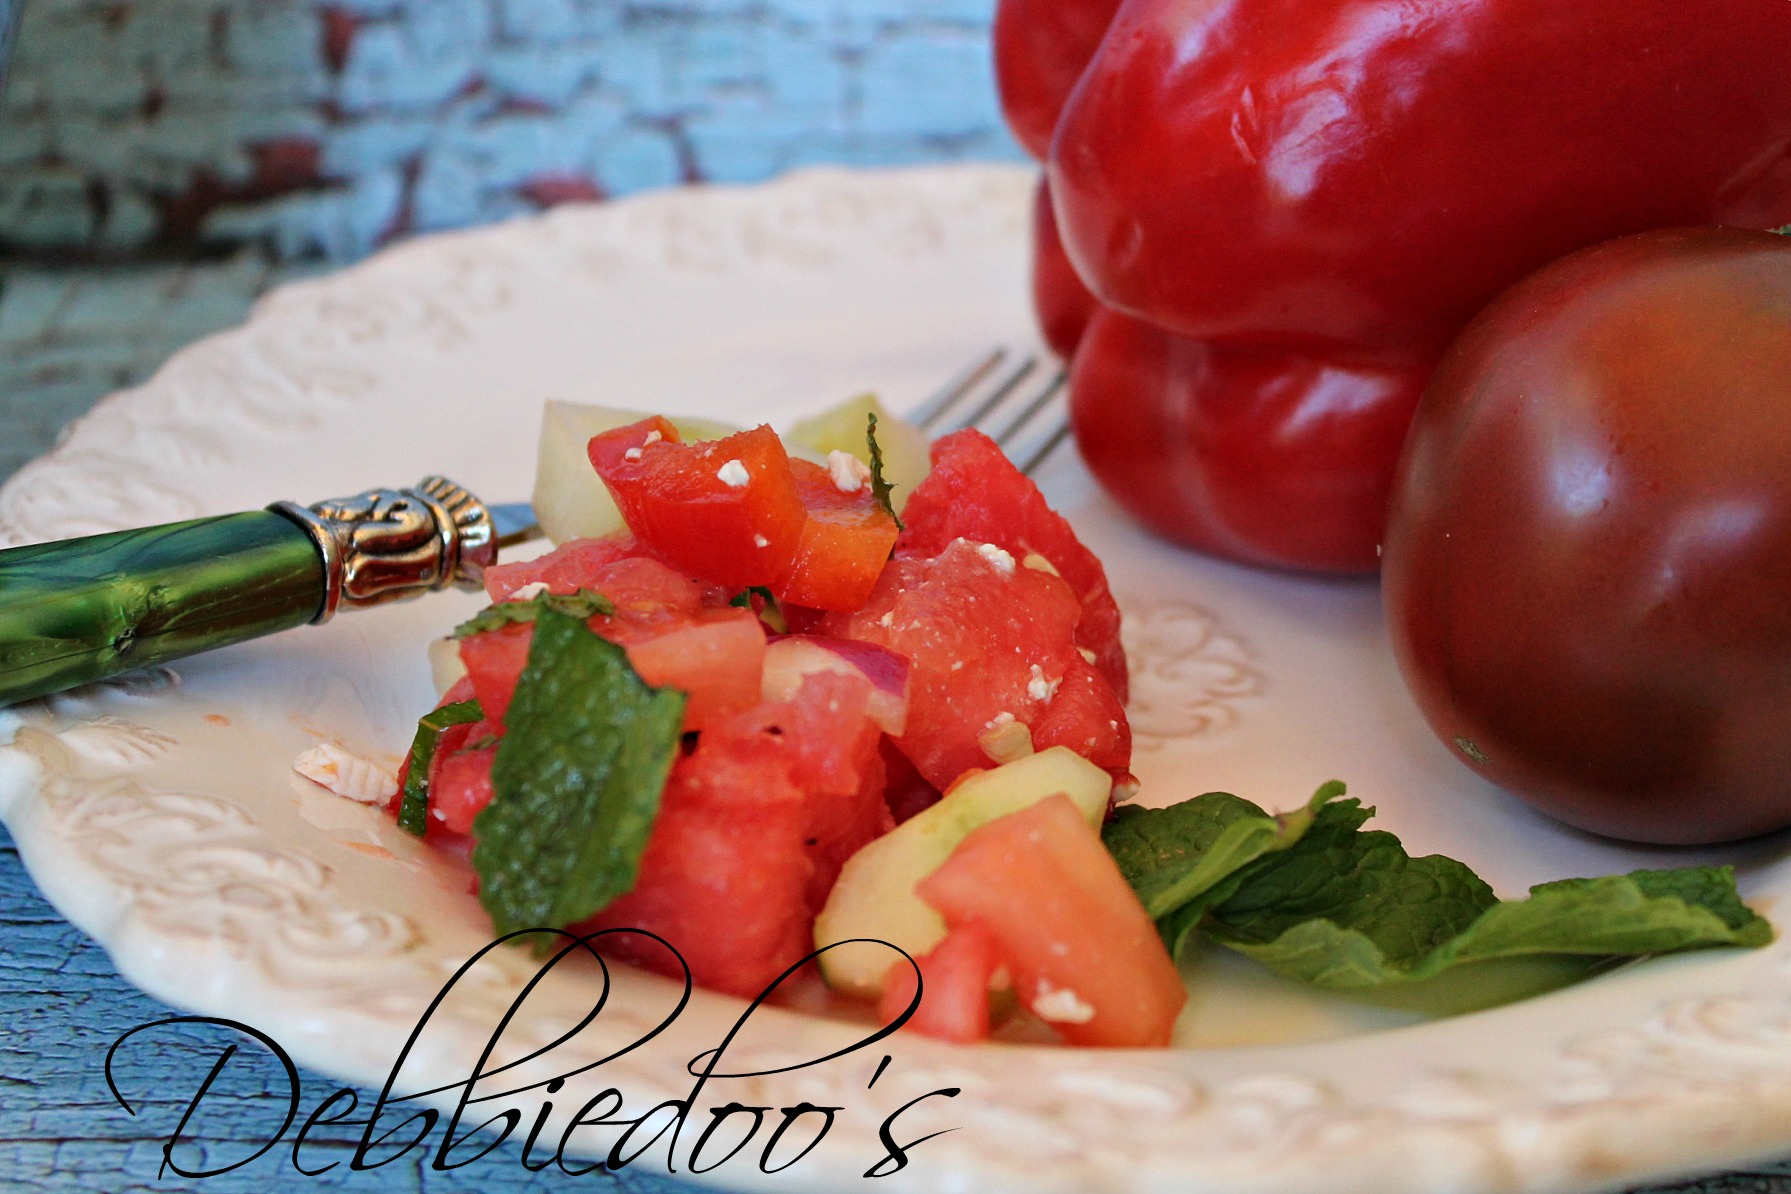 watermelon and tomato salad with feta cheese